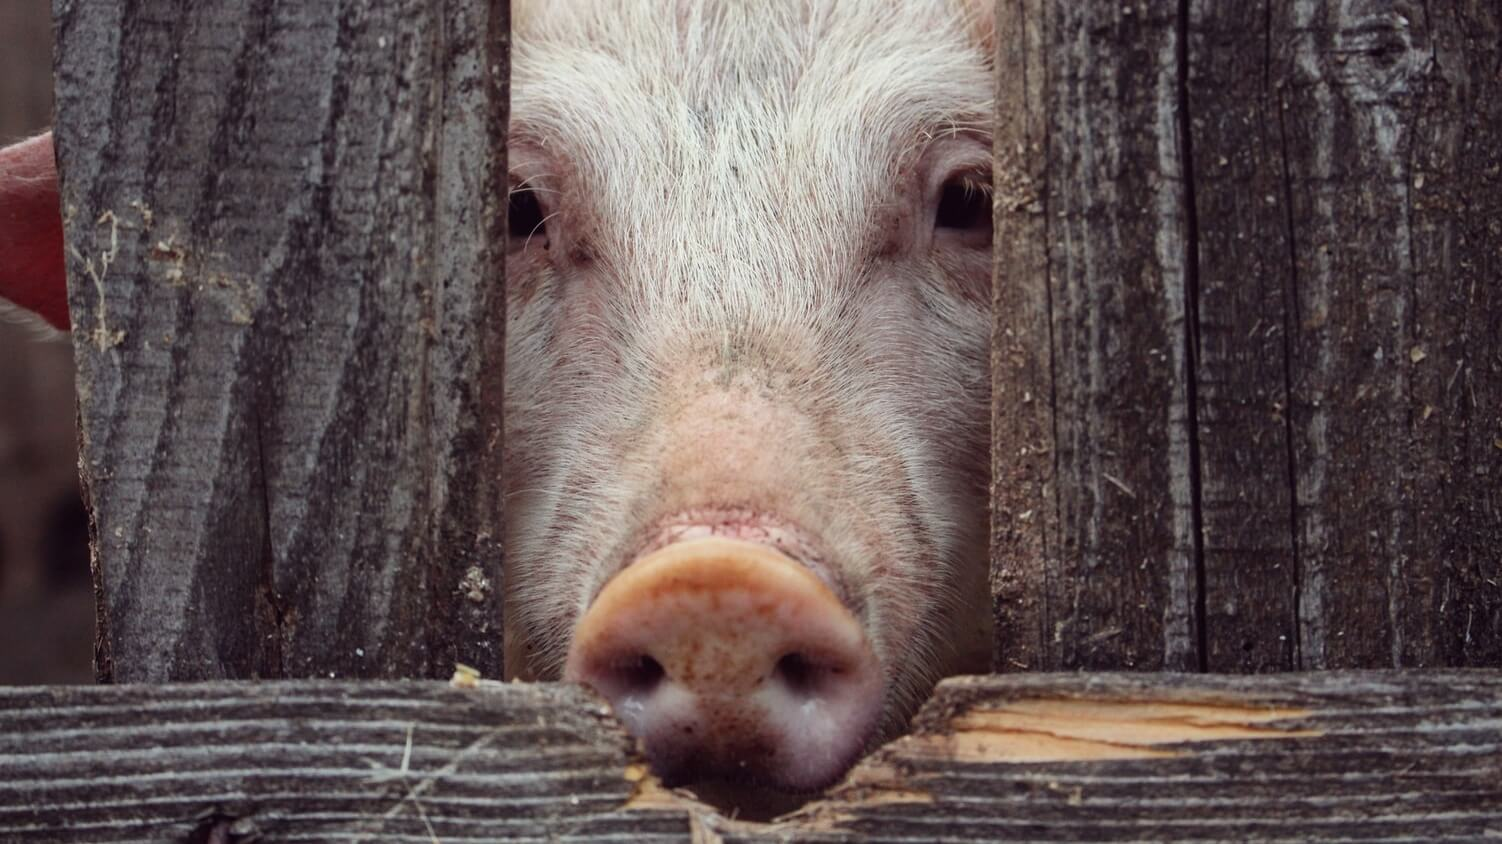 The Netherlands May Soon Tax Animal Slaughter